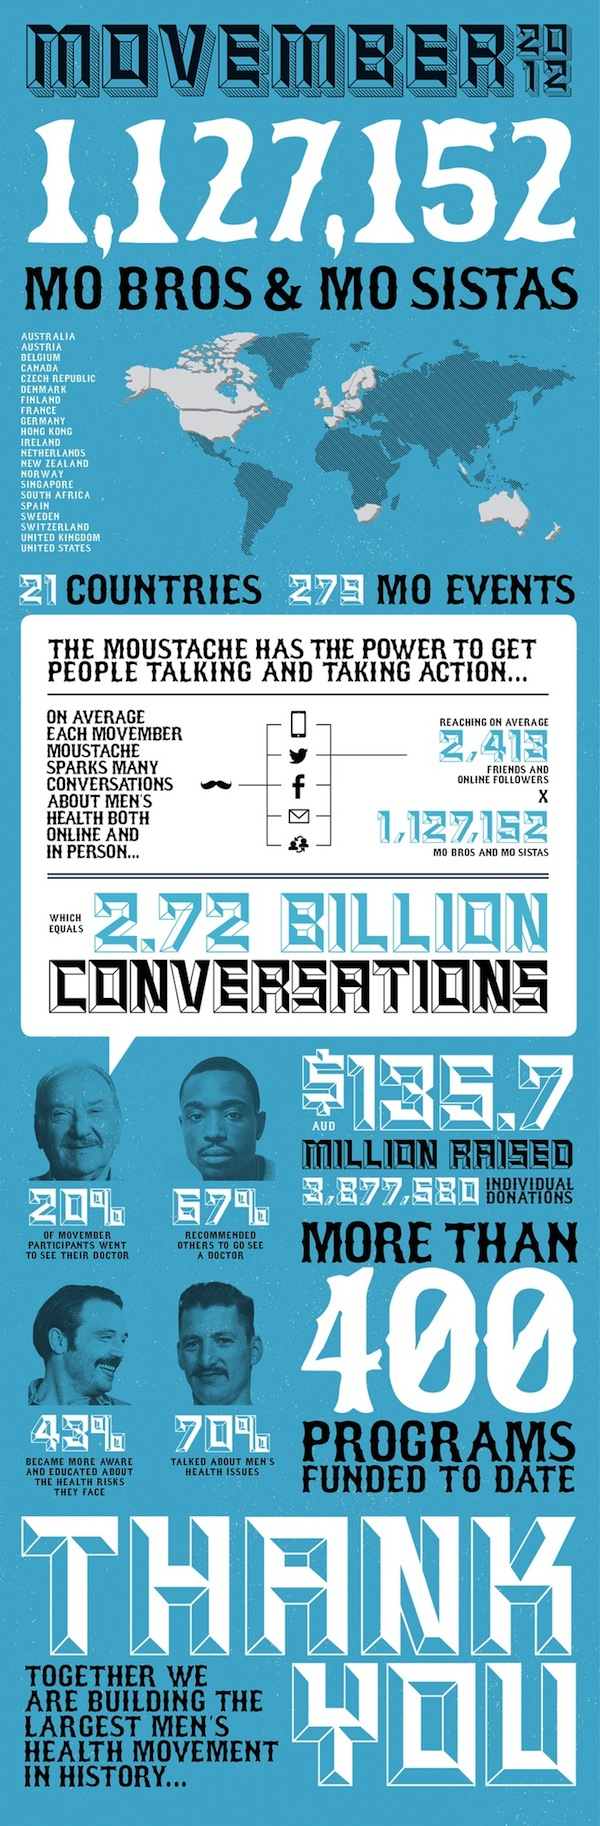 infographie movember 2012